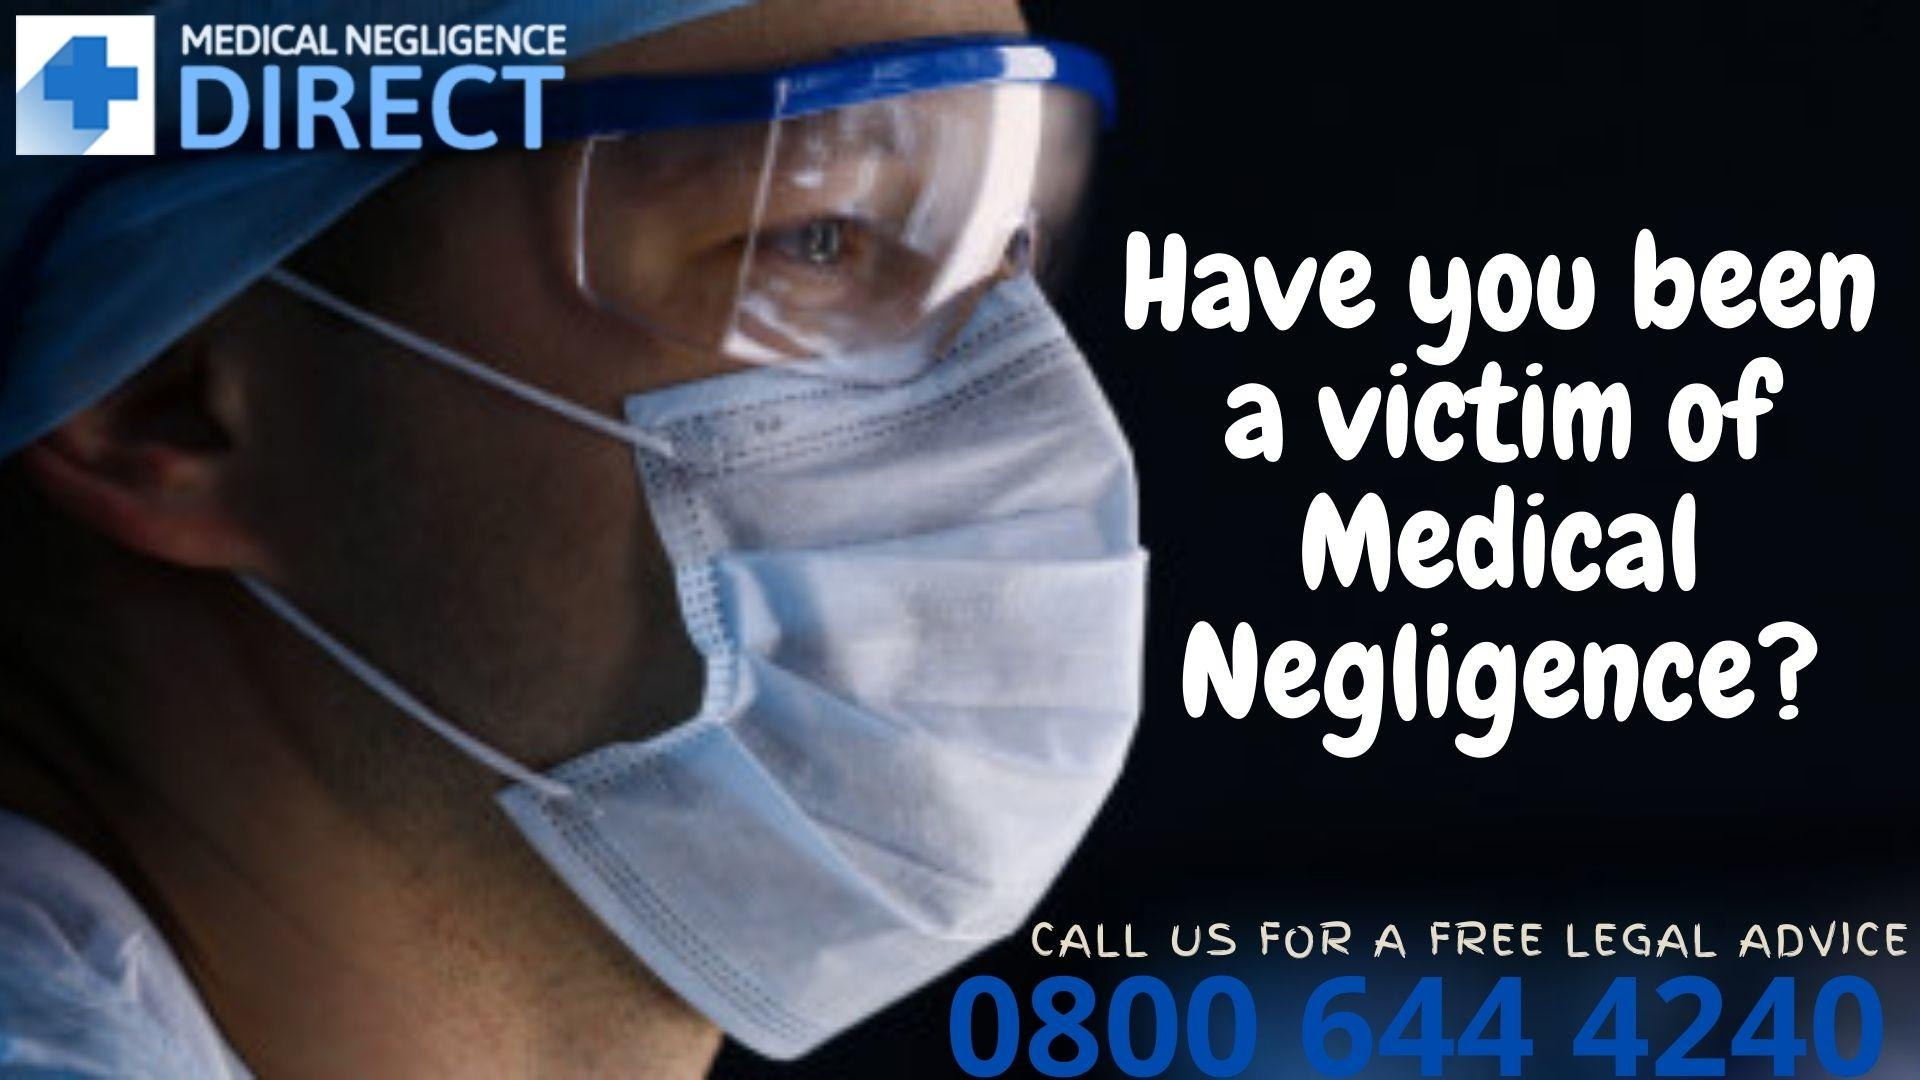 Image - Medical Negligence occur due to #WrongTreatment by a hospital. If you have been a victim of #MedicalNegligenc...